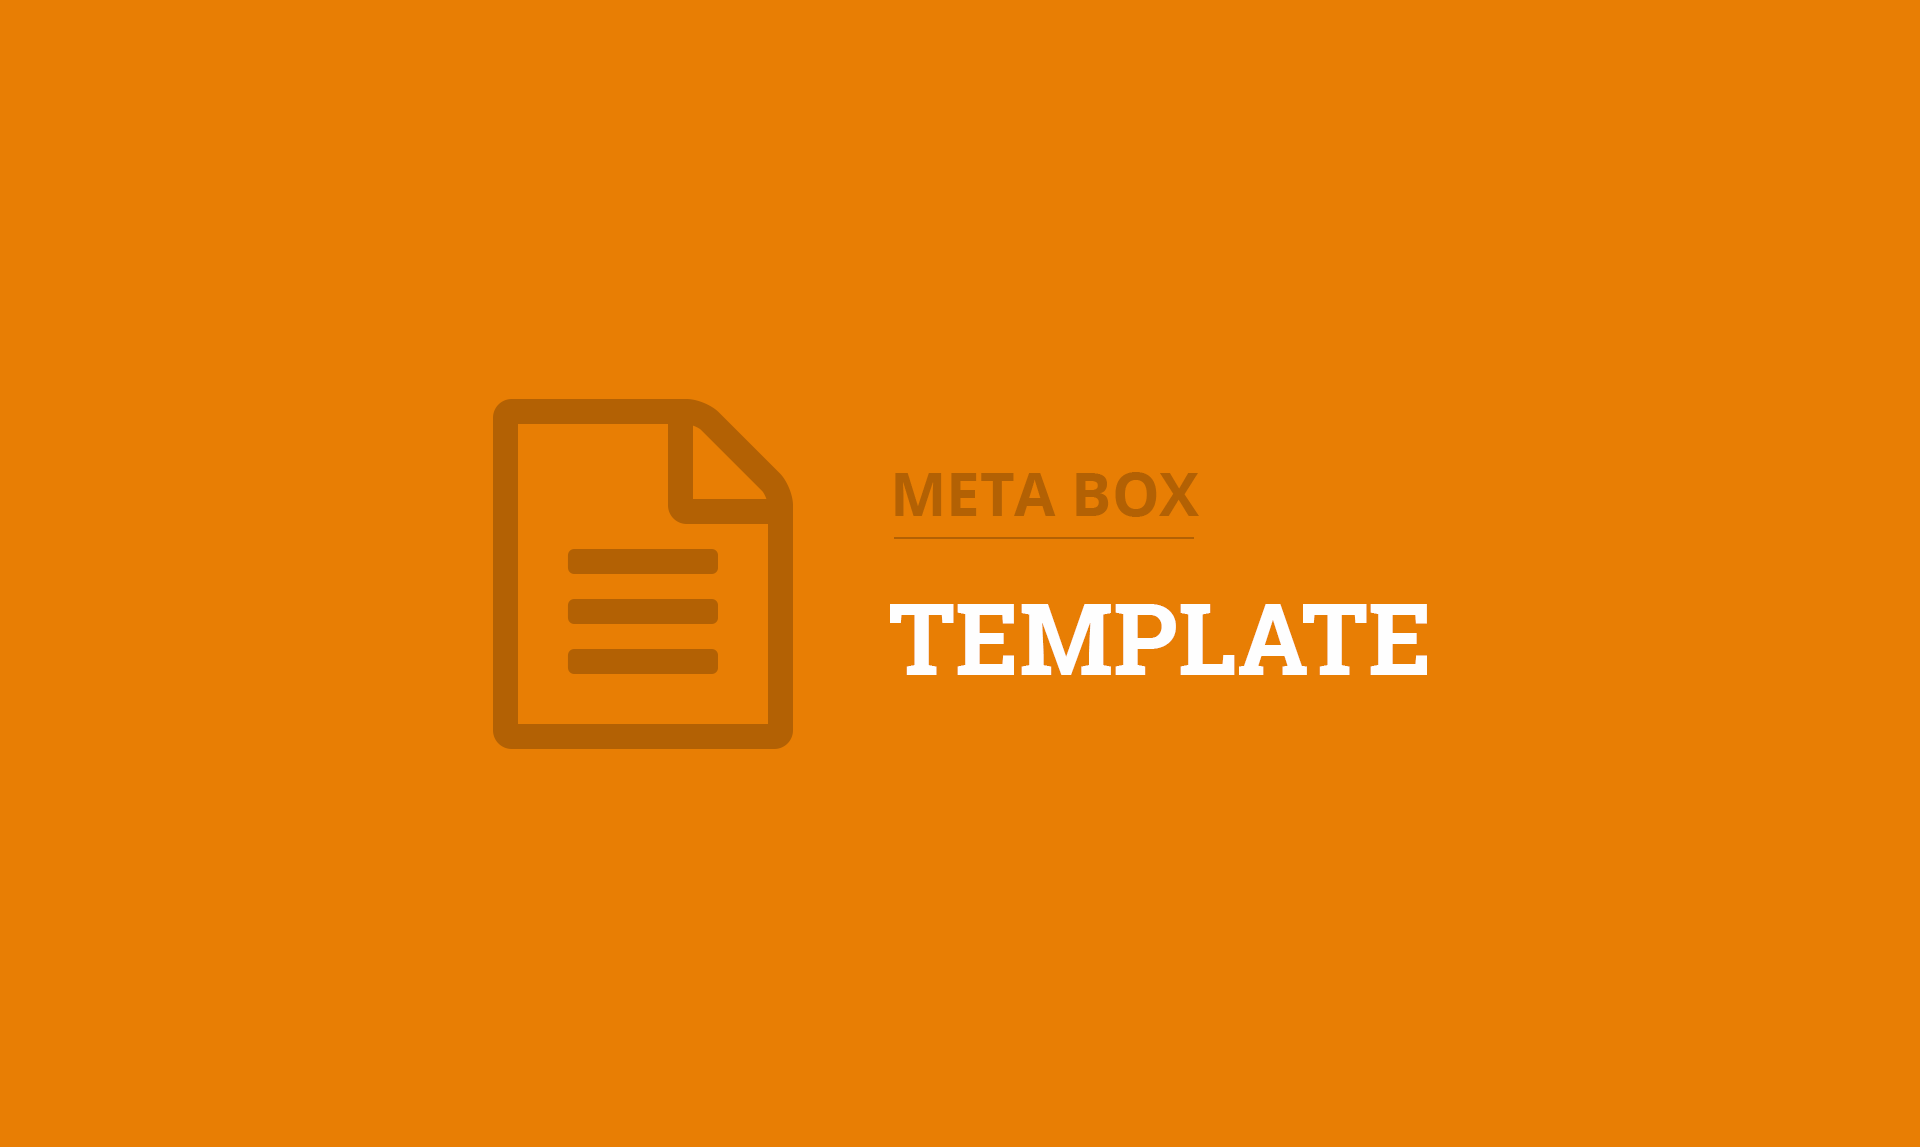 Meta Box Template